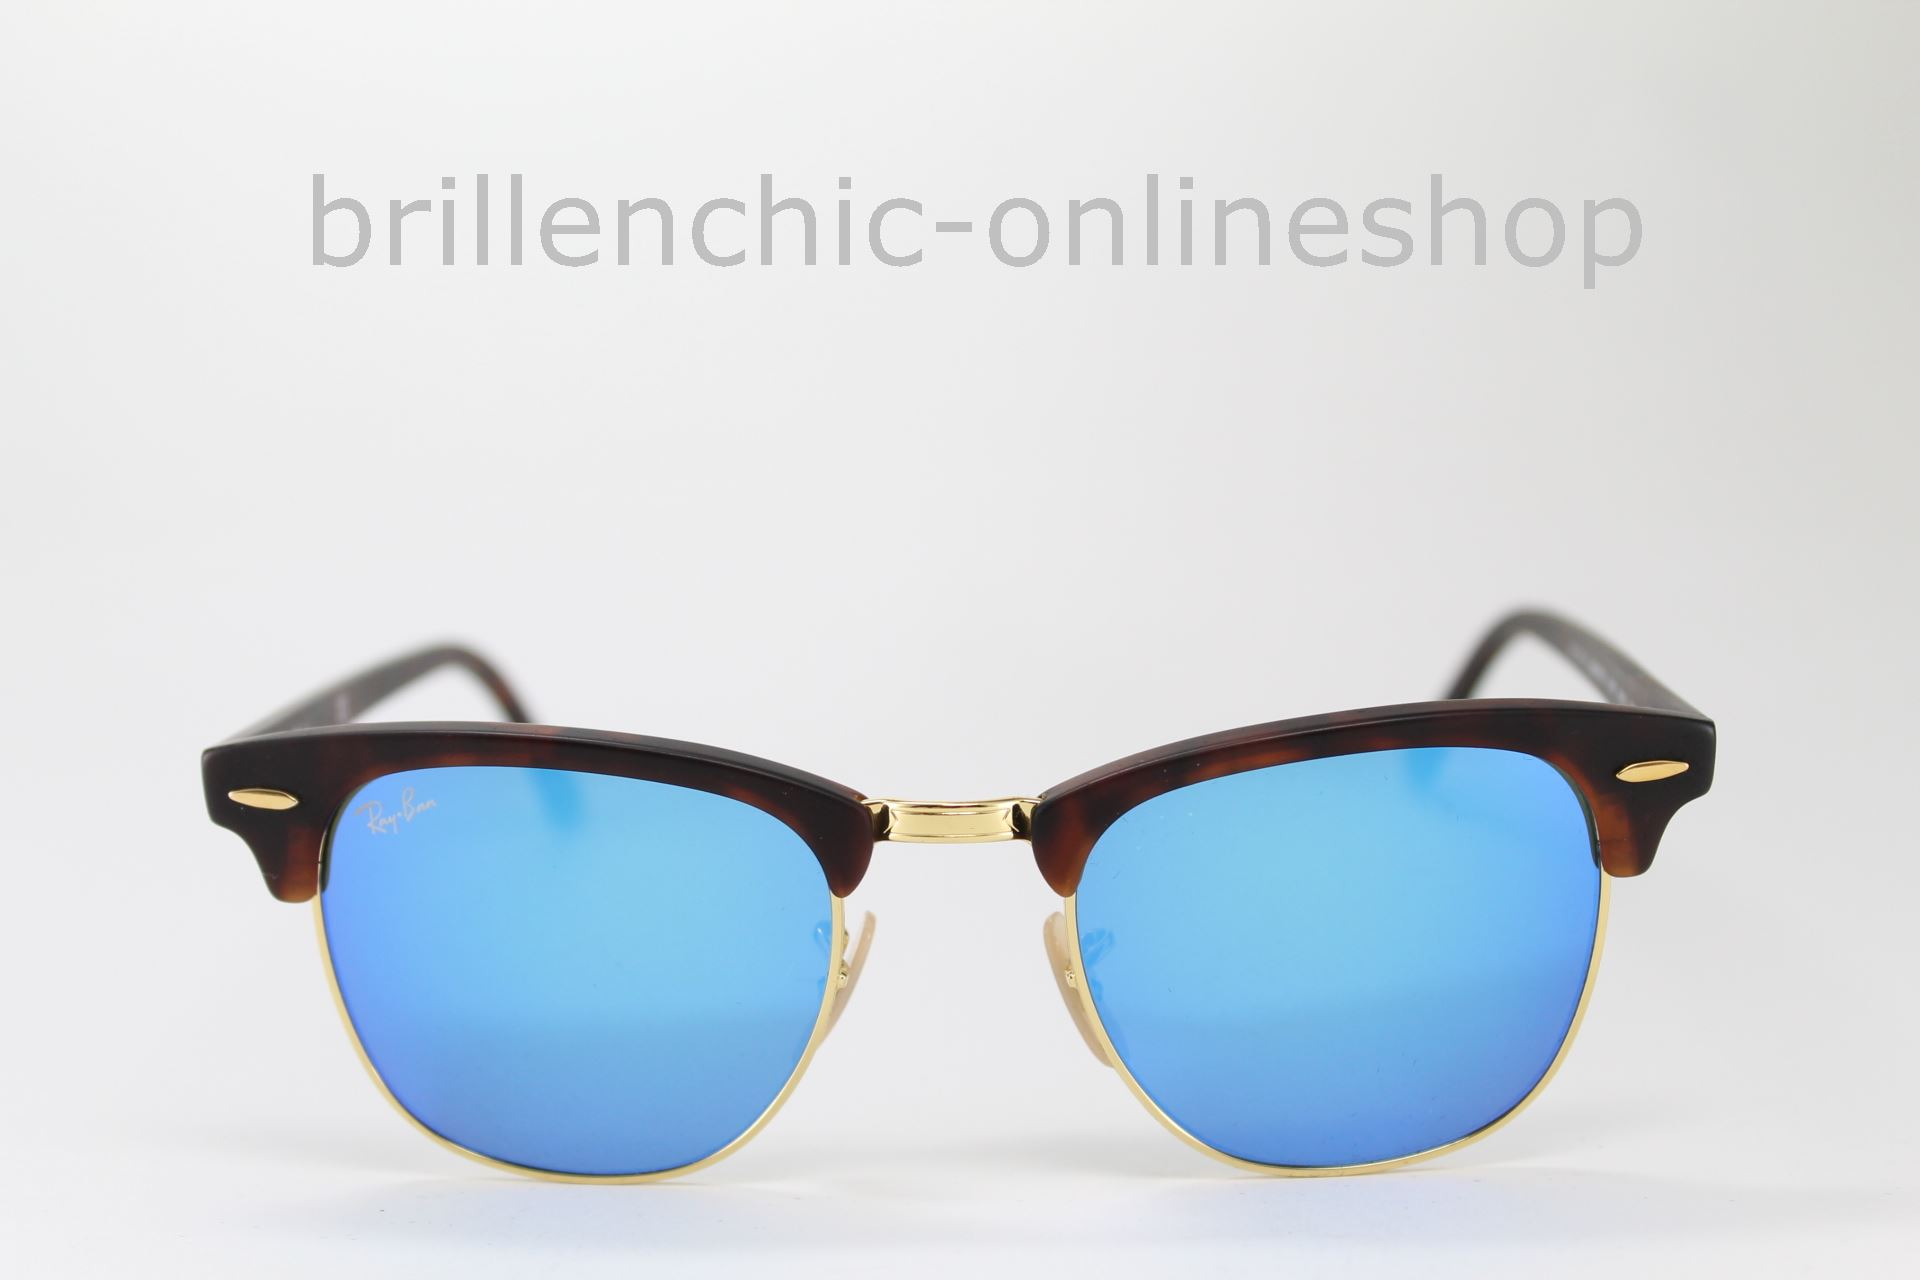 f87a12ebc2 Brillenchic-onlineshop in Berlin - Ray Ban CLUBMASTER RB 3016 1145 ...